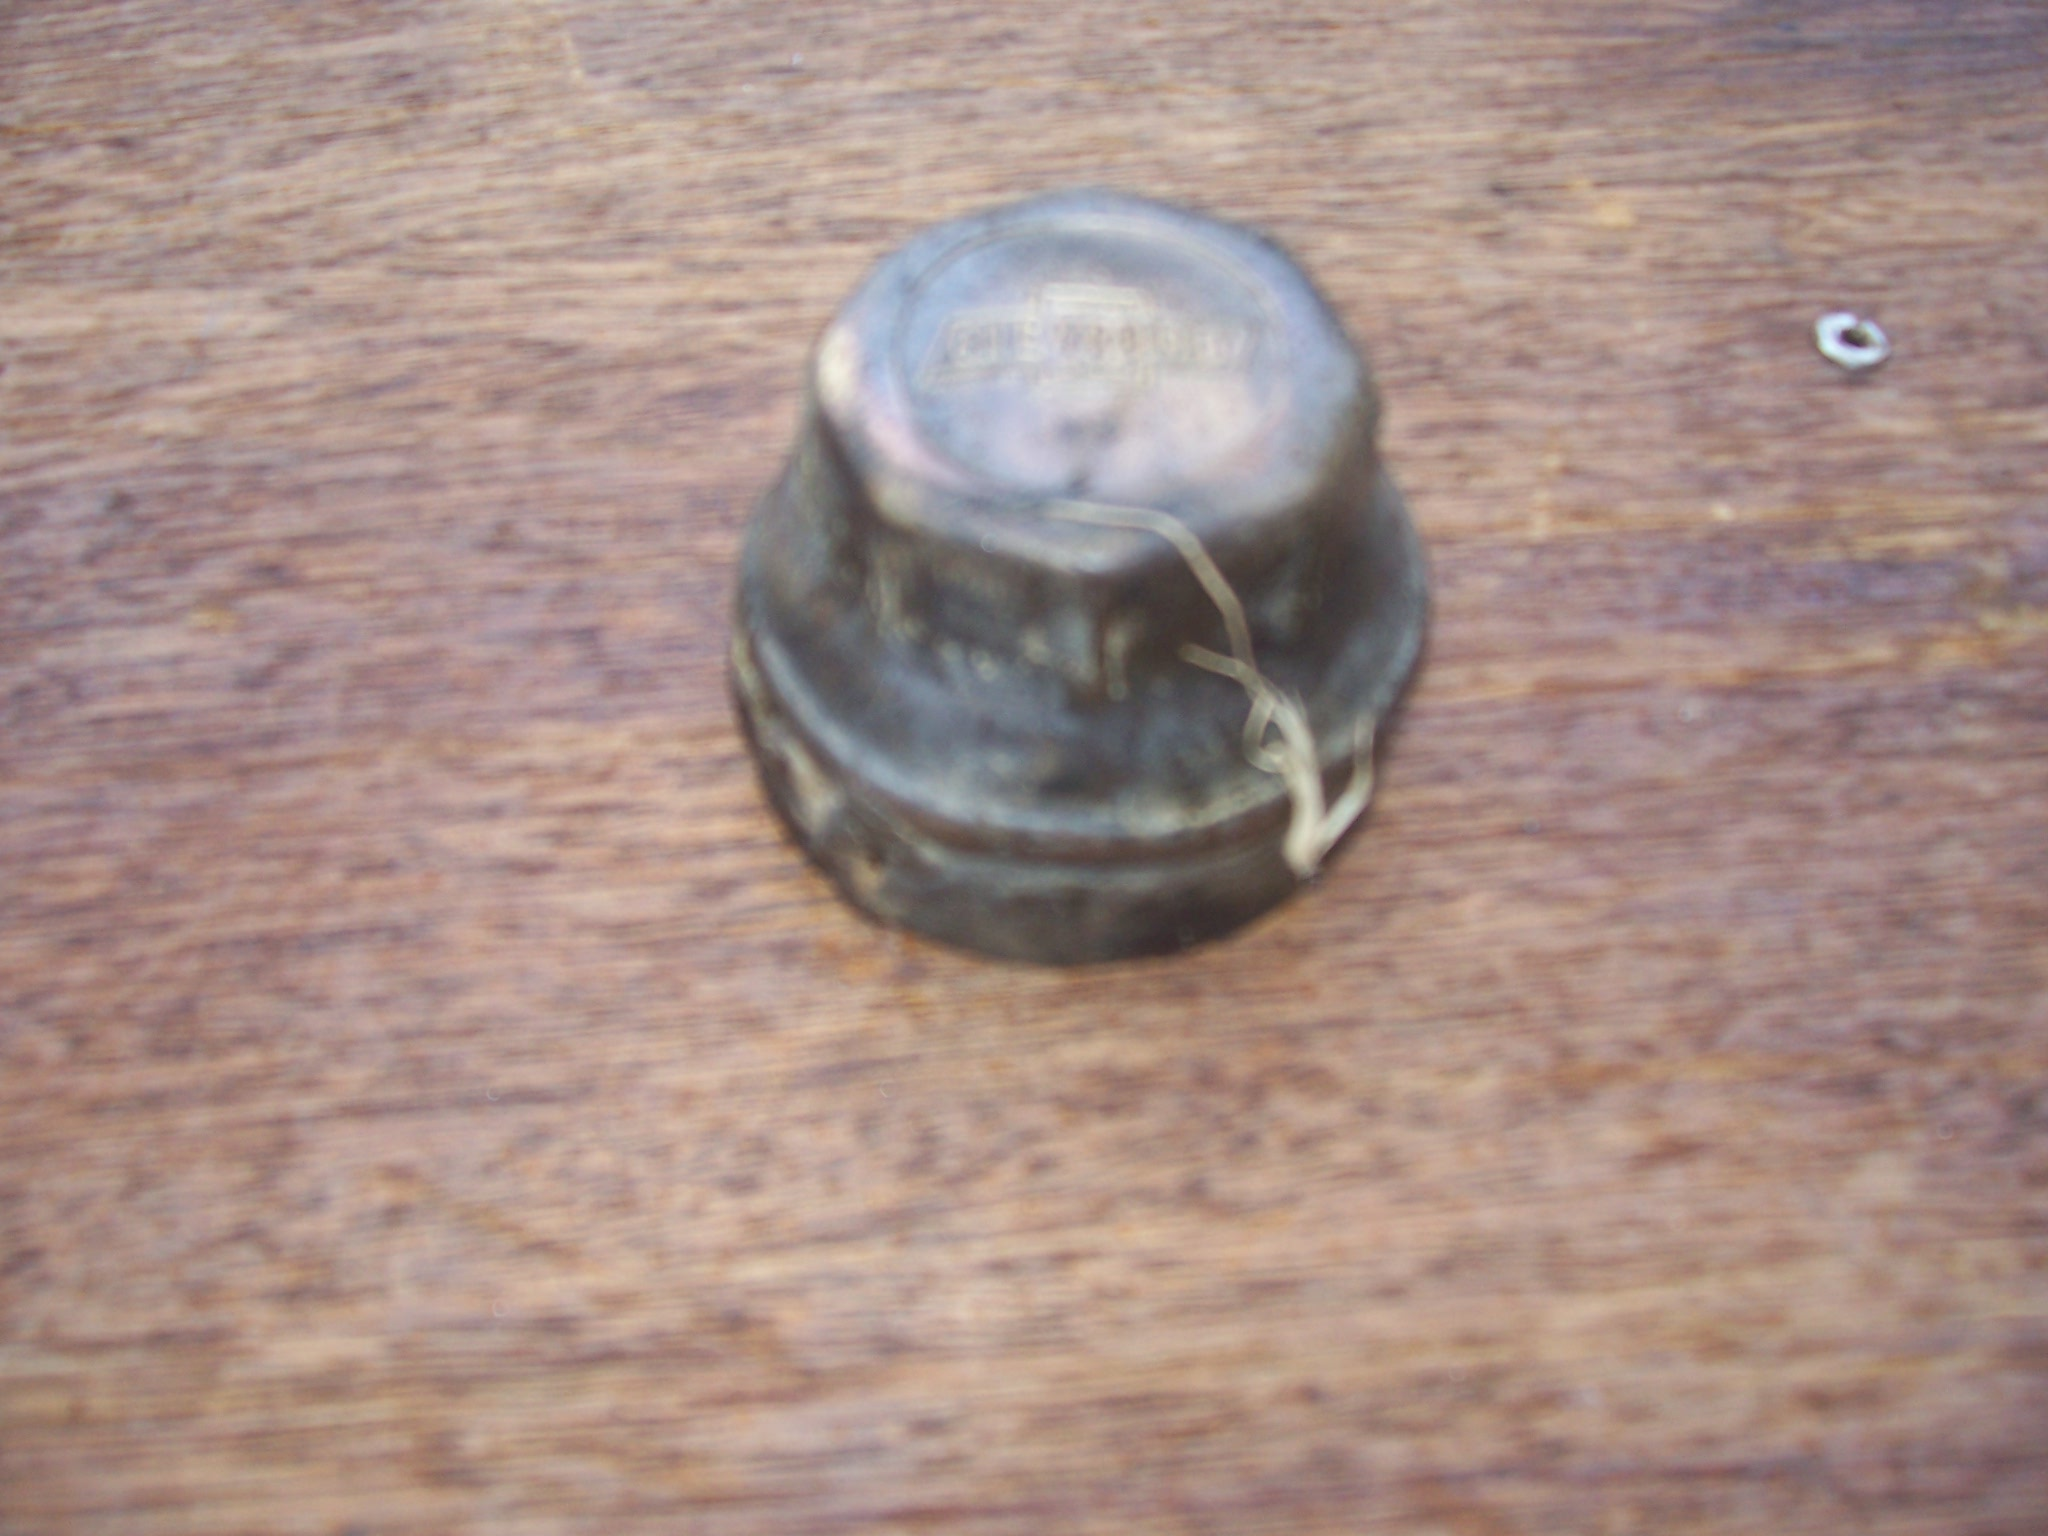 Old Chevy Wheel Grease Caps : Swapmeet vintage cheve car wheel grease cap brass